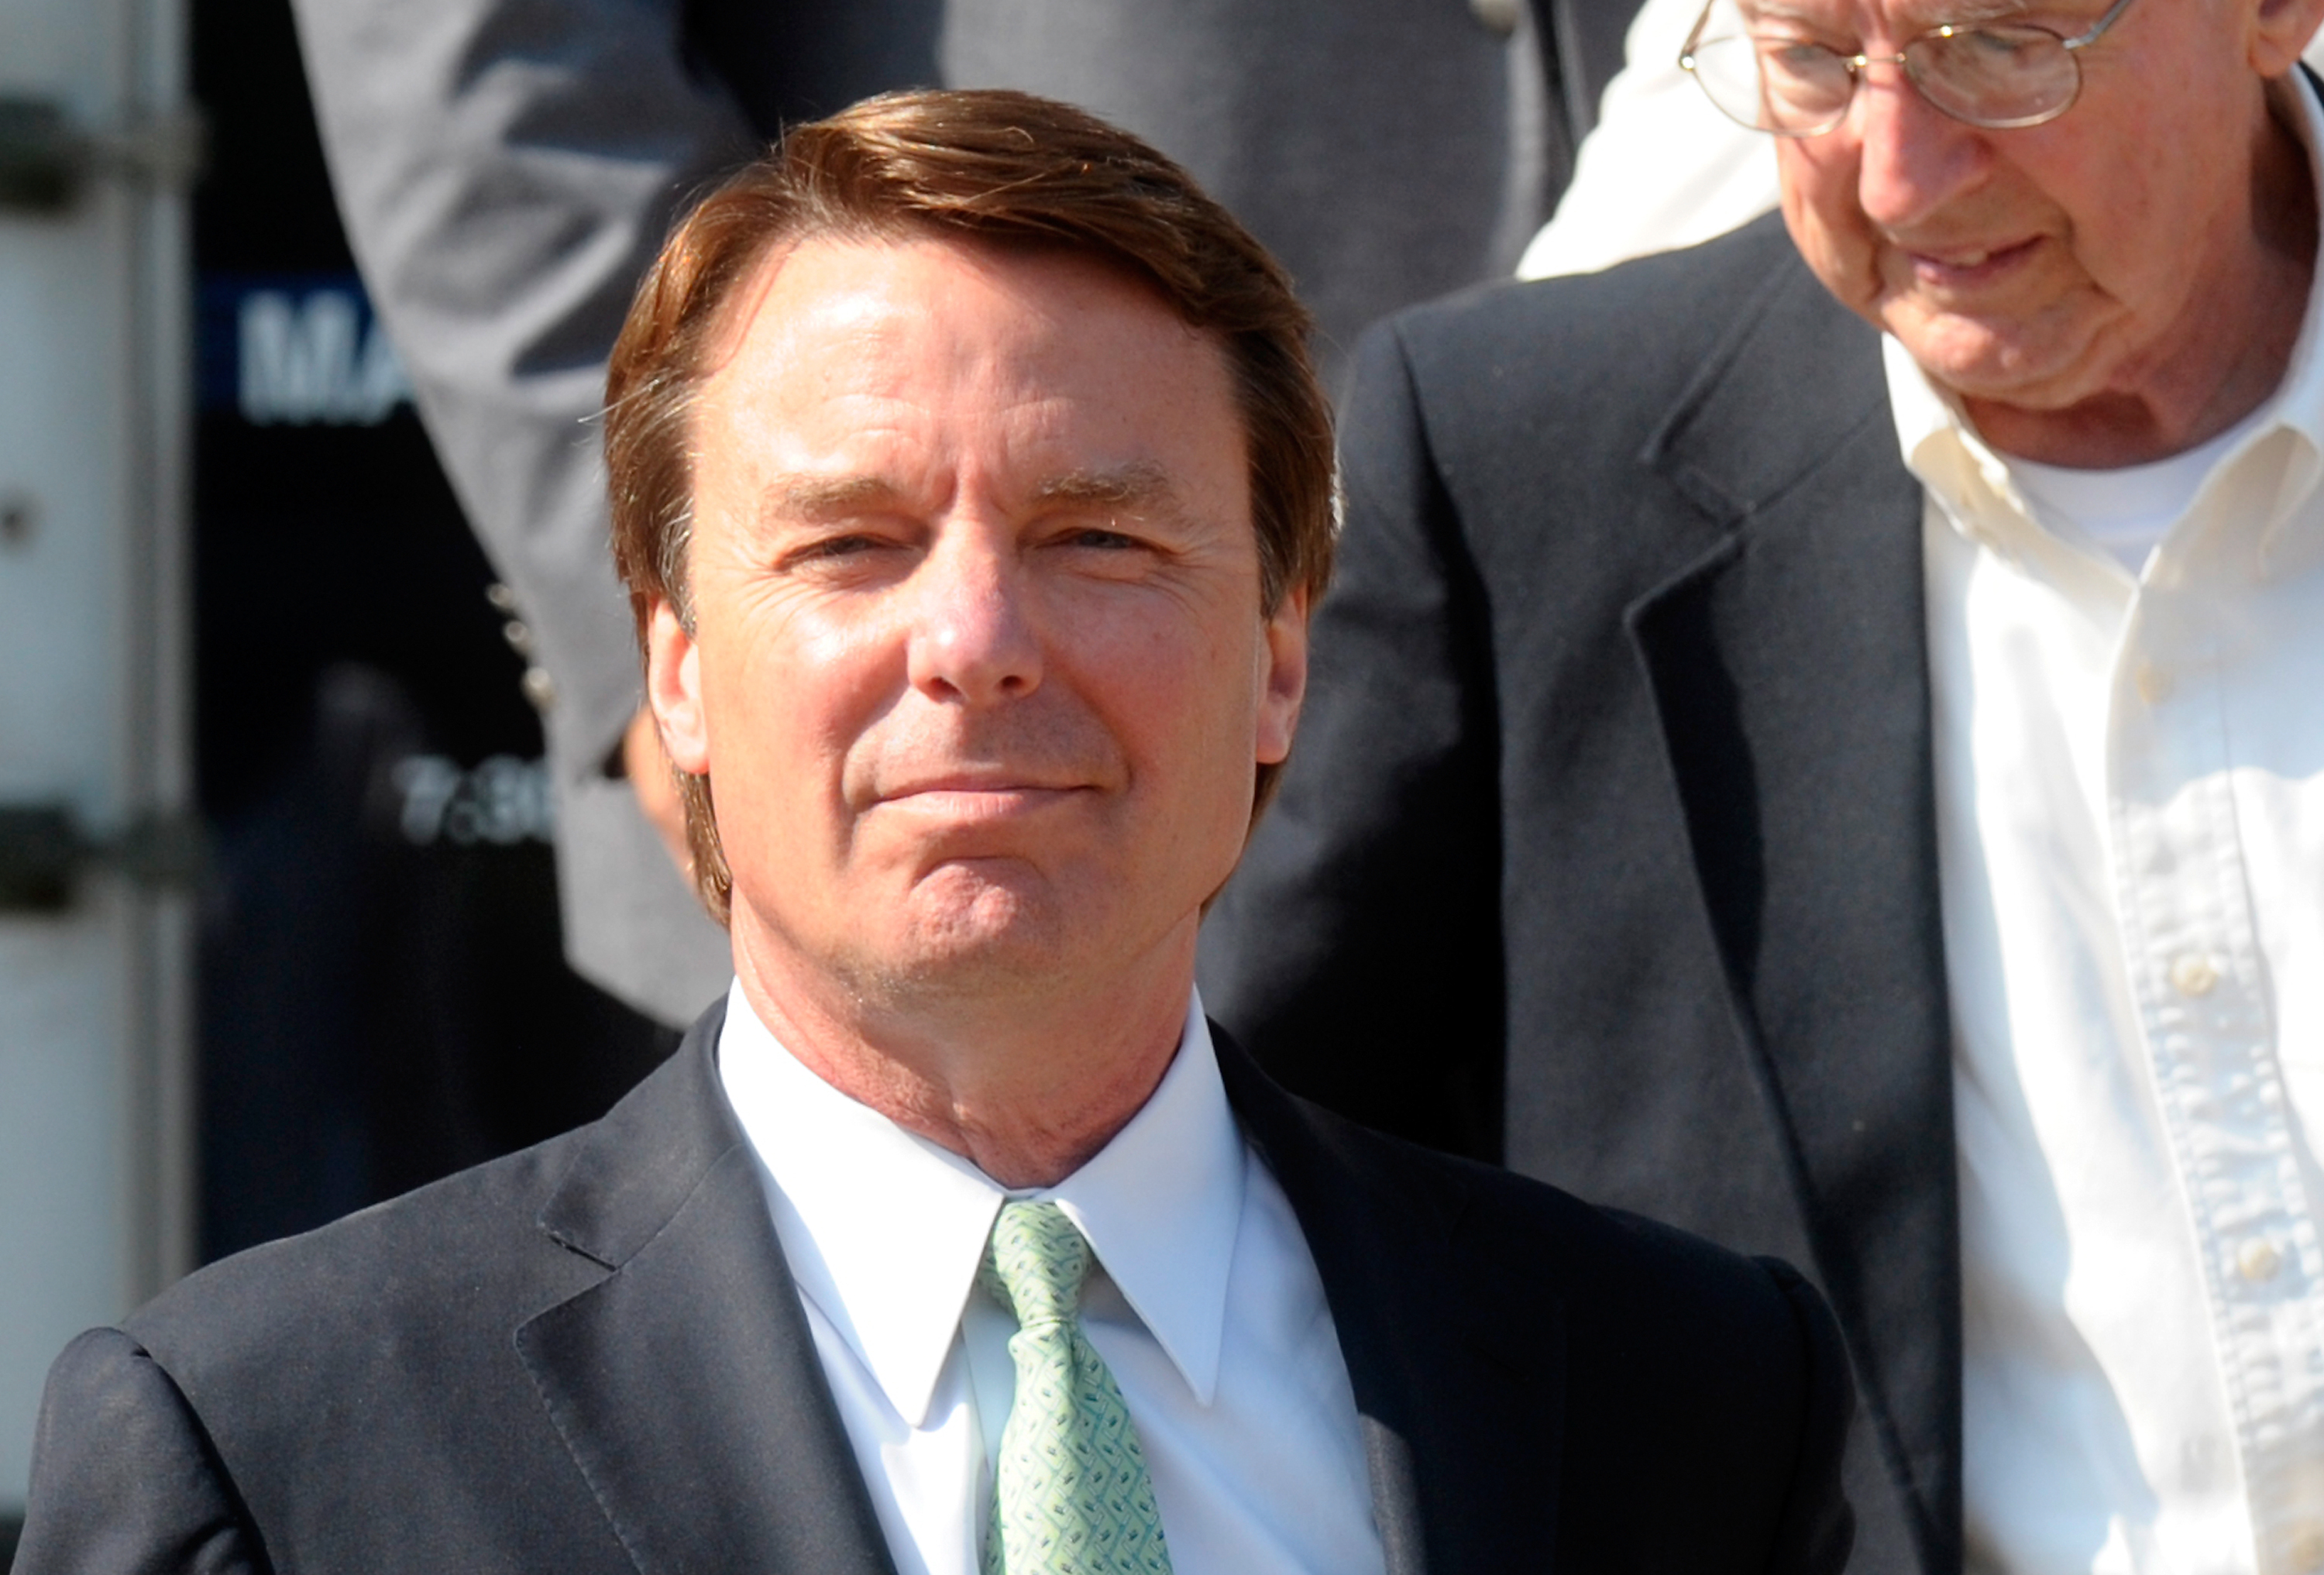 GREENSBORO, NC - MAY 31: Former U.S. Sen. John Edwards exits the federal court May 31, 2012 in Greensboro, North Carolina. Edwards was acquitted on one count and a mistrial was declared on the five other counts after nine-days of jury deliberations in his corruption trial. (Photo by Sara D. Davis/Getty Images)